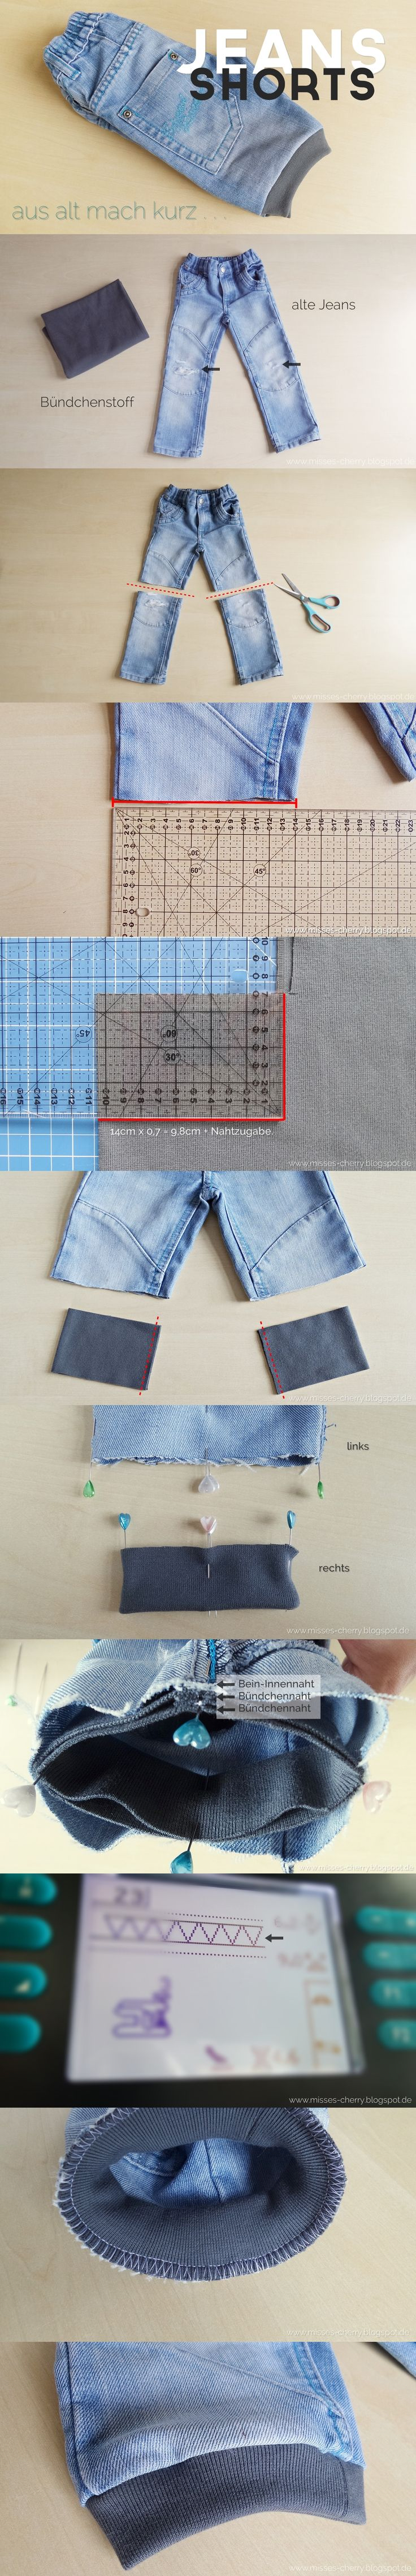 Anleitung kurze Jeans mit Bündchen #upcycling #nähanleitung #anleitung #nähen #nähenfürkinder #tutorial #sewing #kids #jeansshorts #shorts #boys